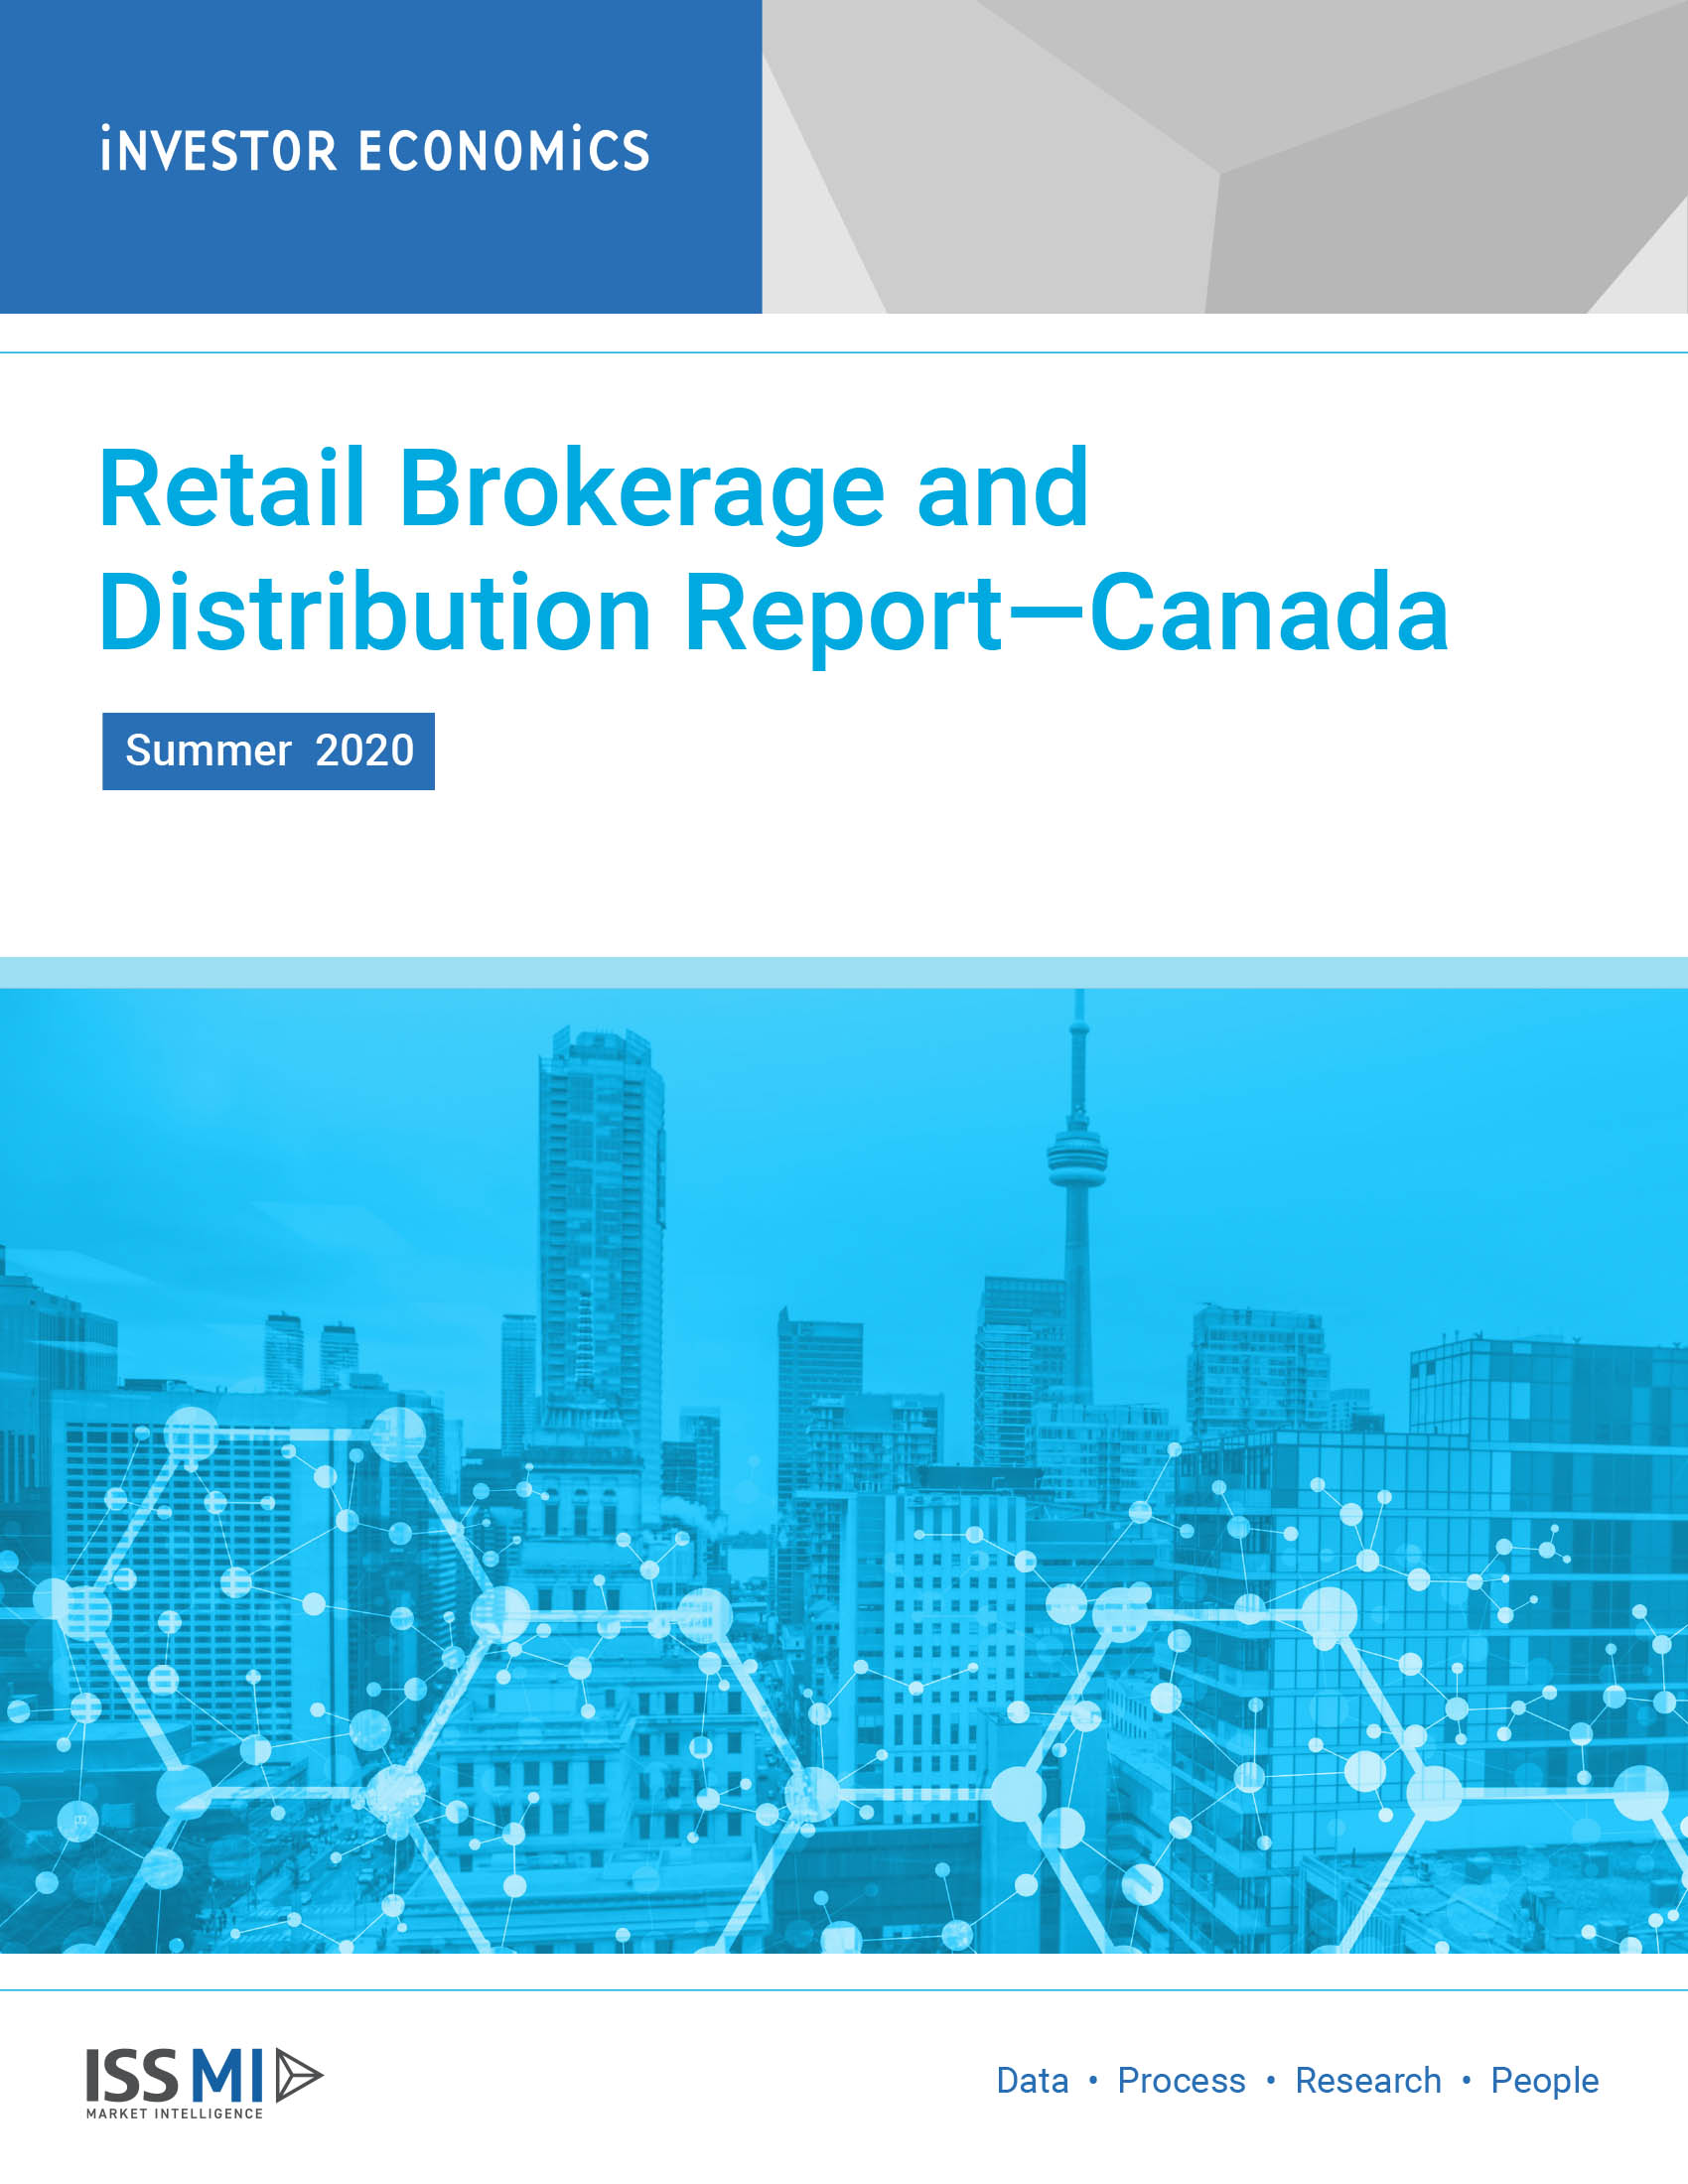 Retail Brokerage and Distribution Report—Canada Summer 2020